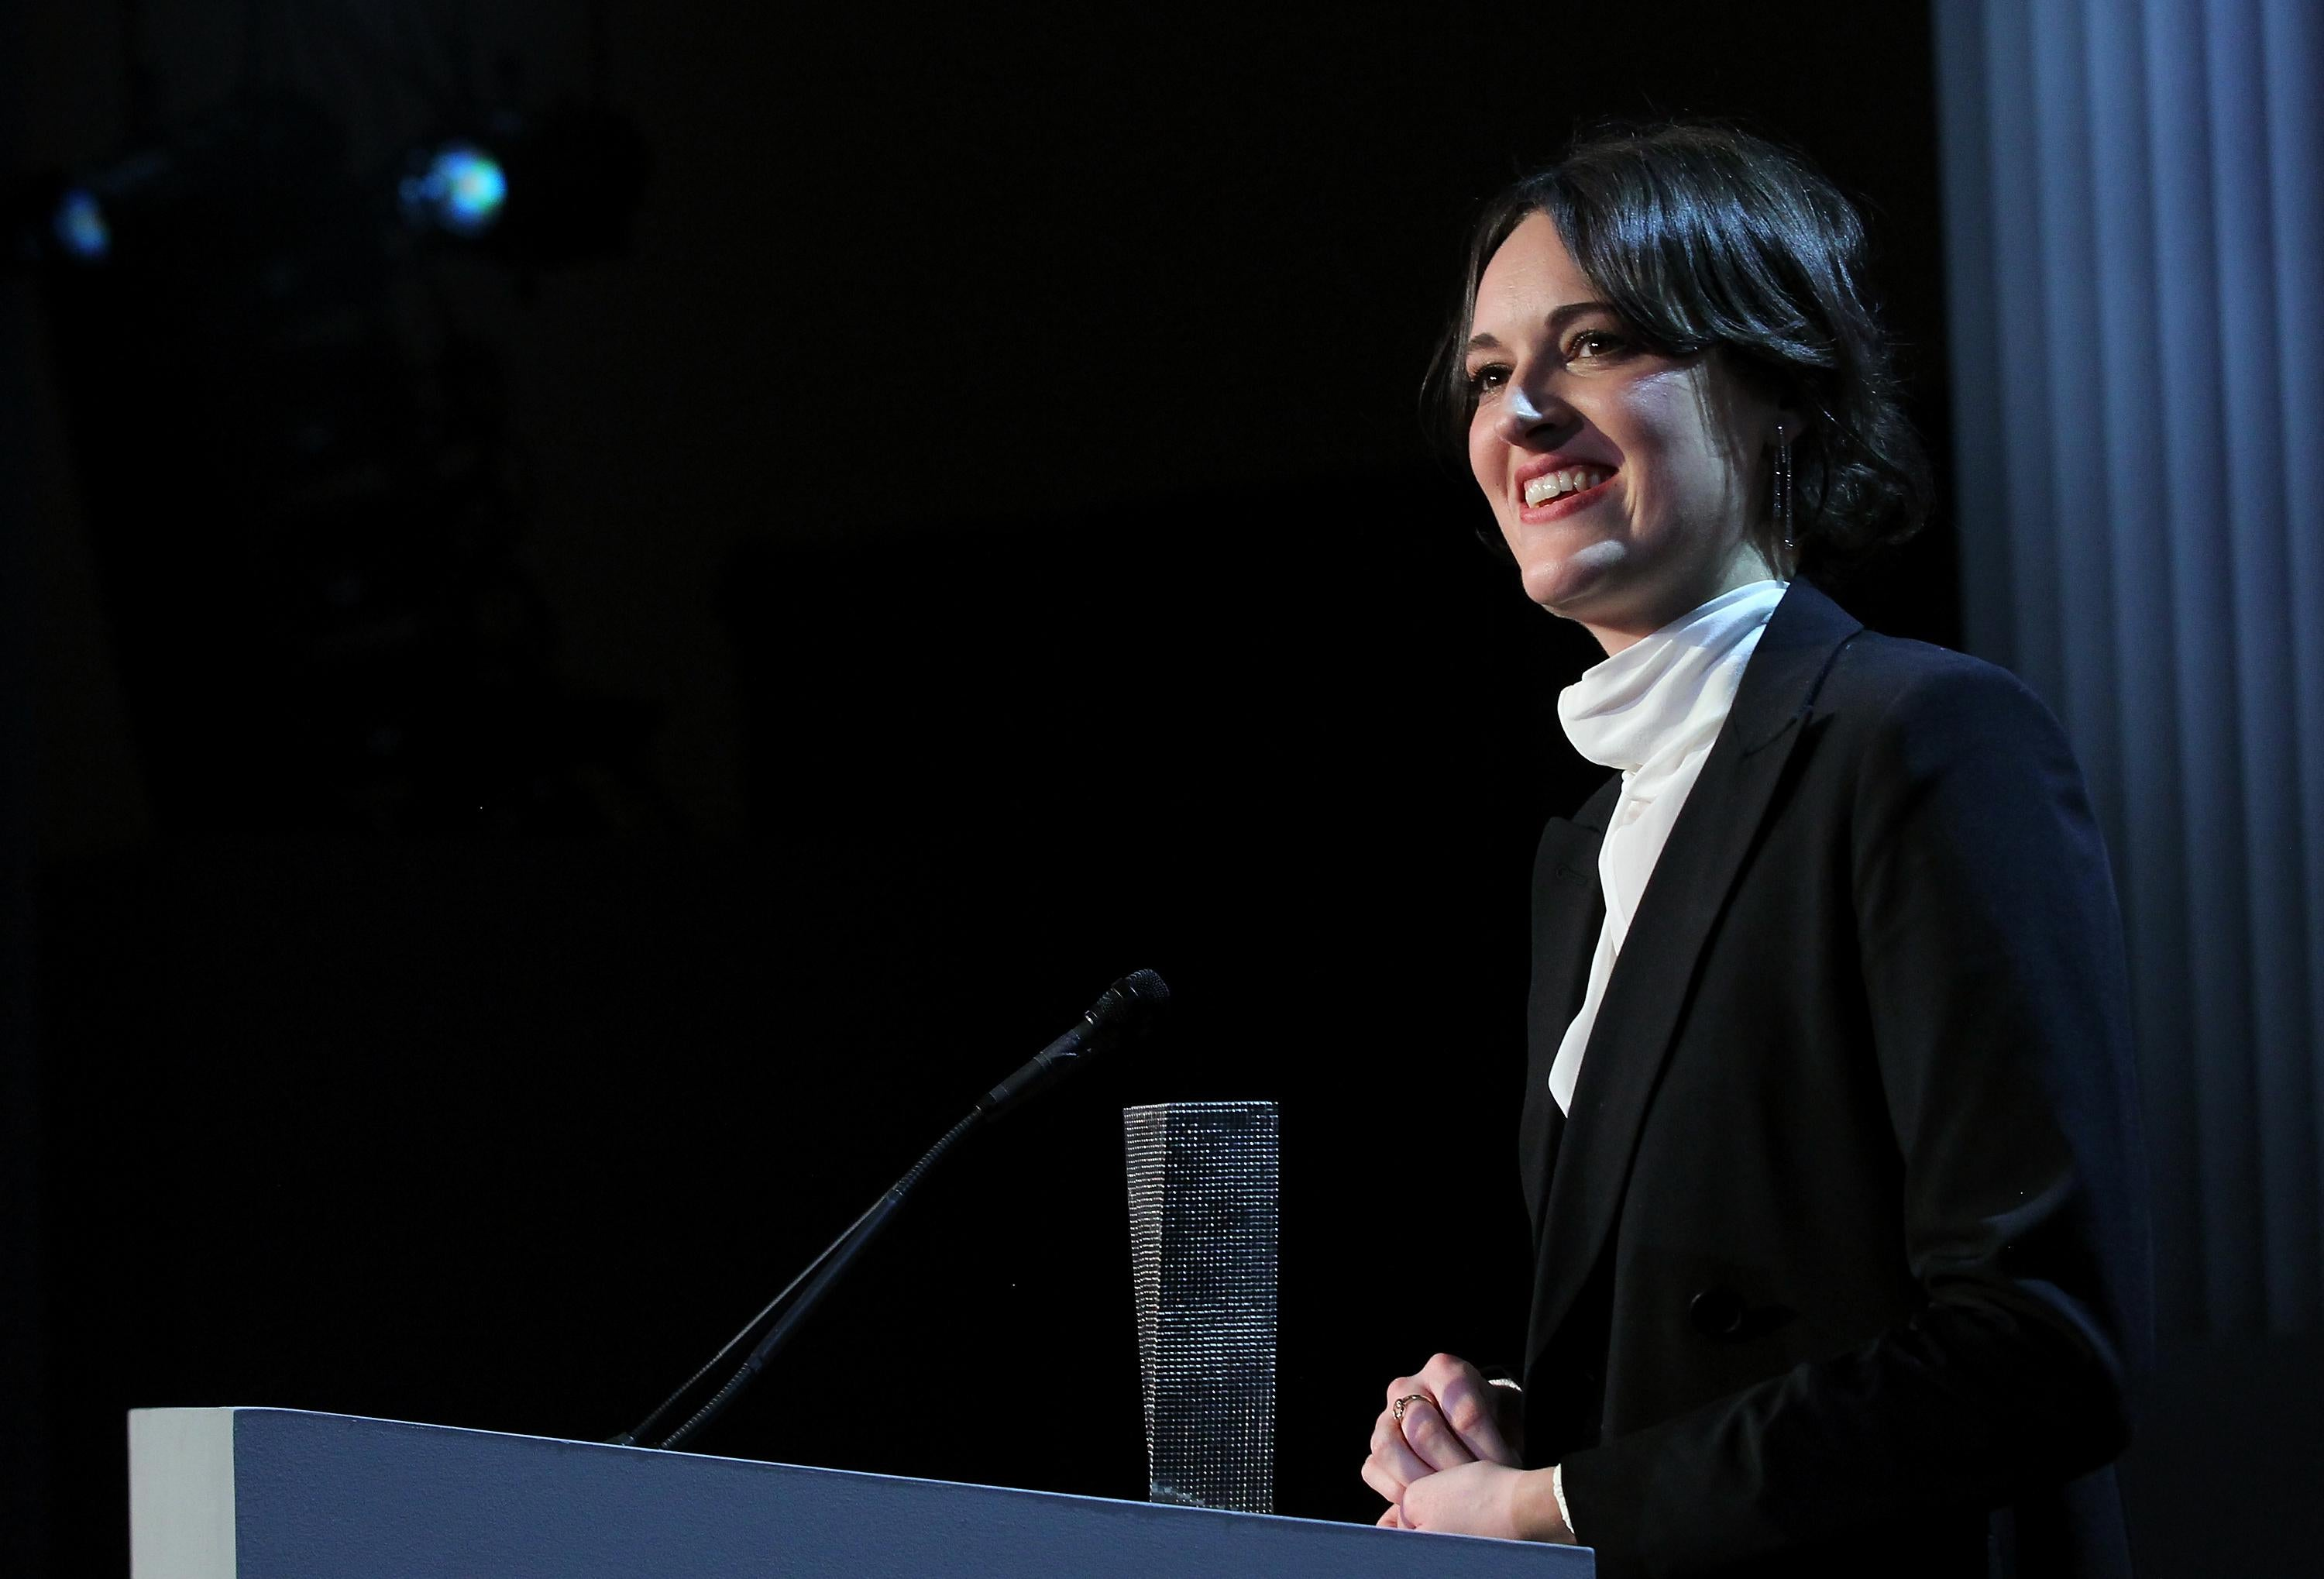 Phoebe Waller-Bridge stands at a podium in a dimly lit room.